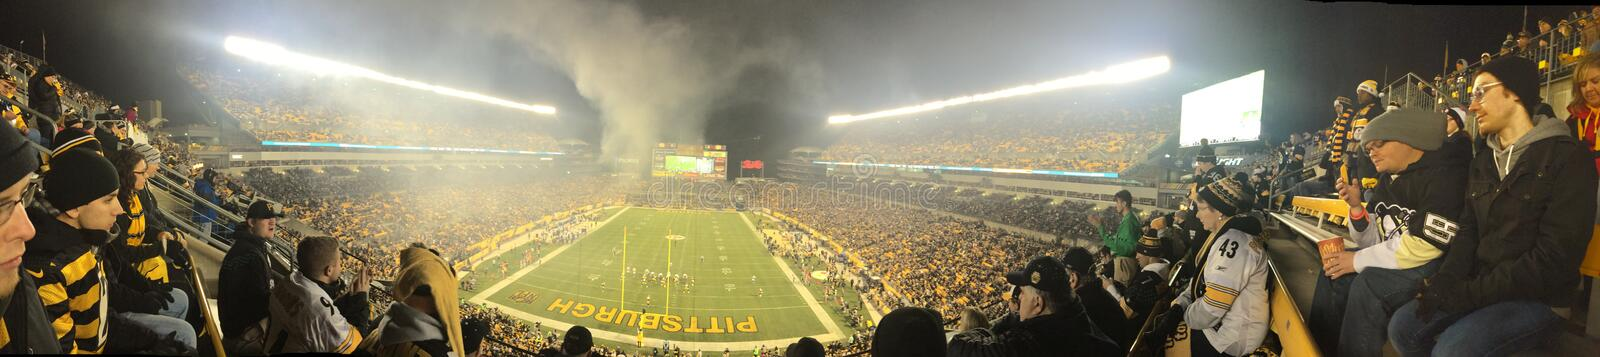 Heinz Field stock photos